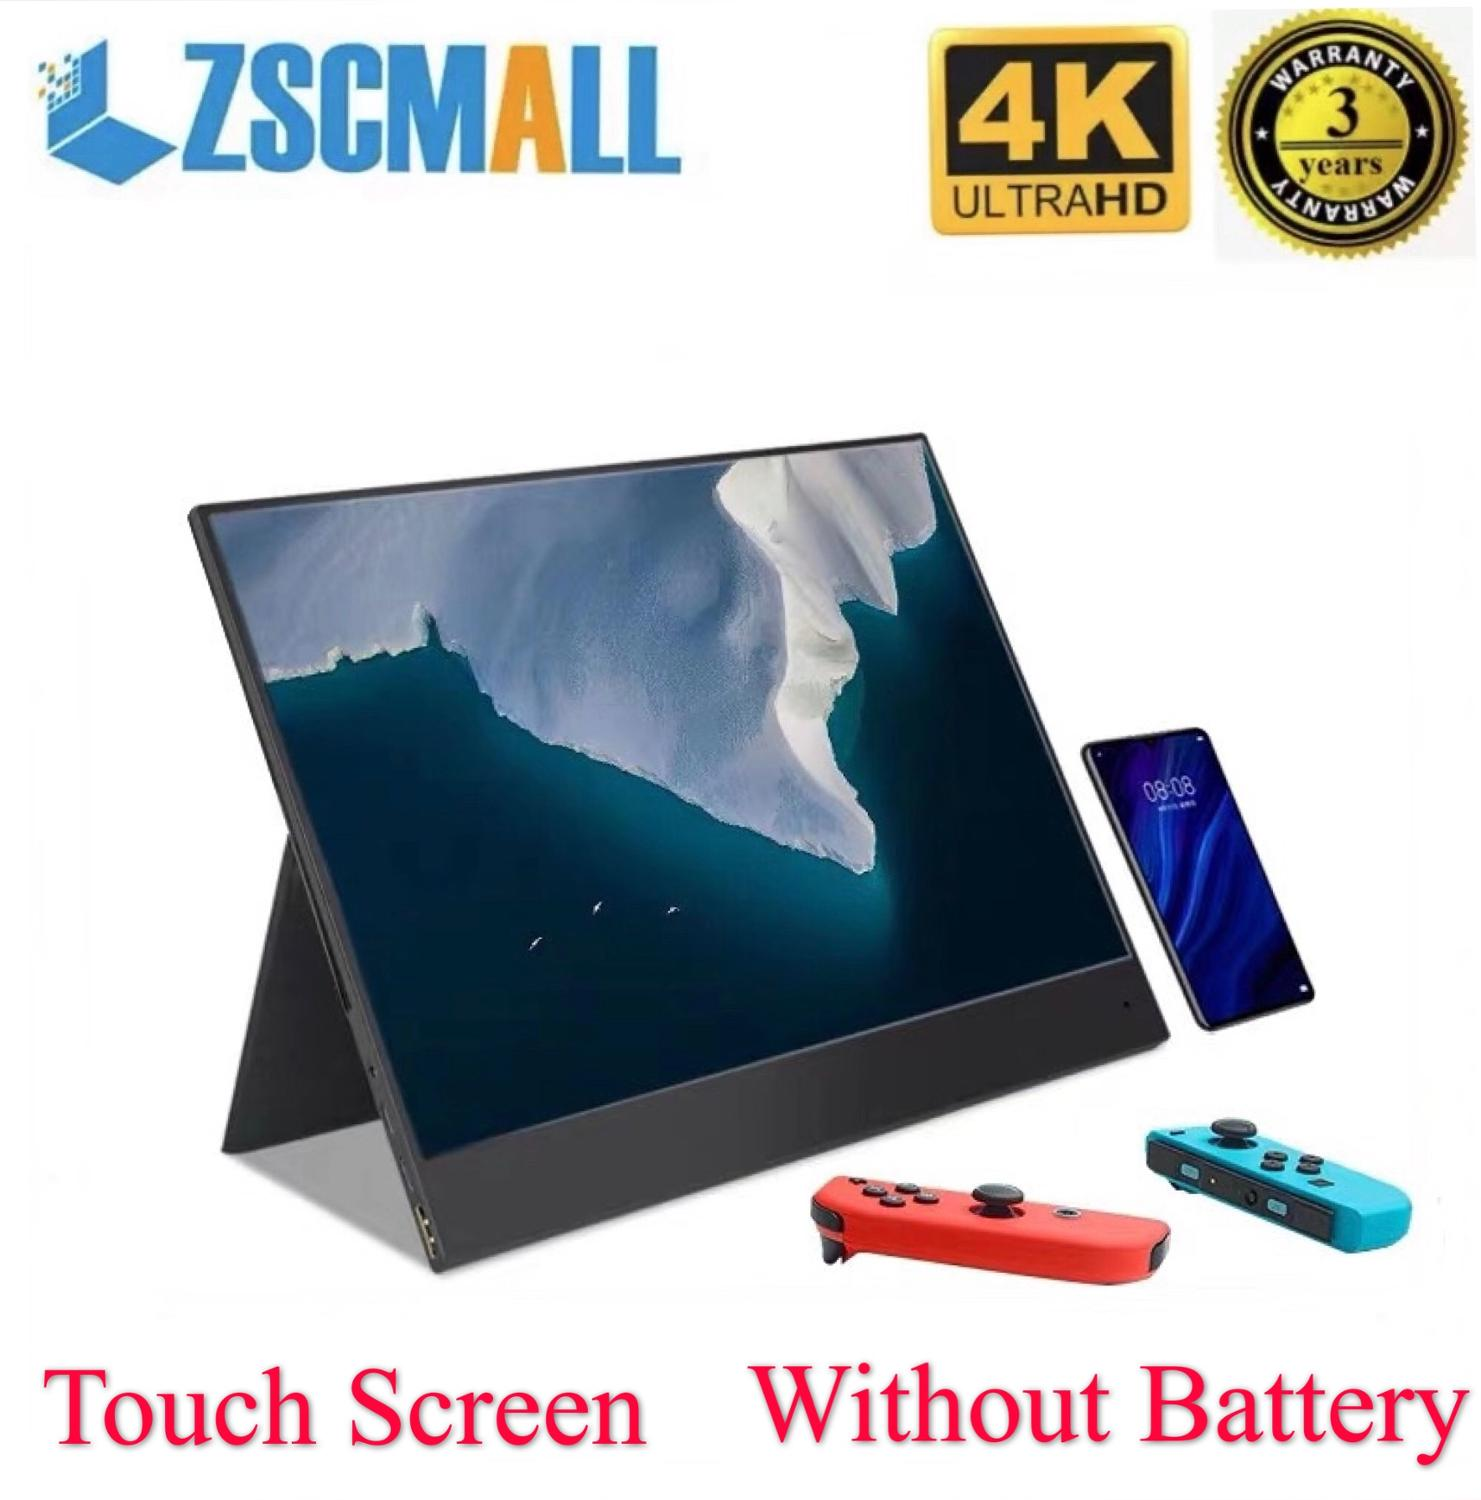 "Portable Monitor 15.6"" 4K Screen Ultra-light and ultra-thin Gaming Monitor IPS1080p display for PS4 Laptop Phone Xbox Switch Pc image"